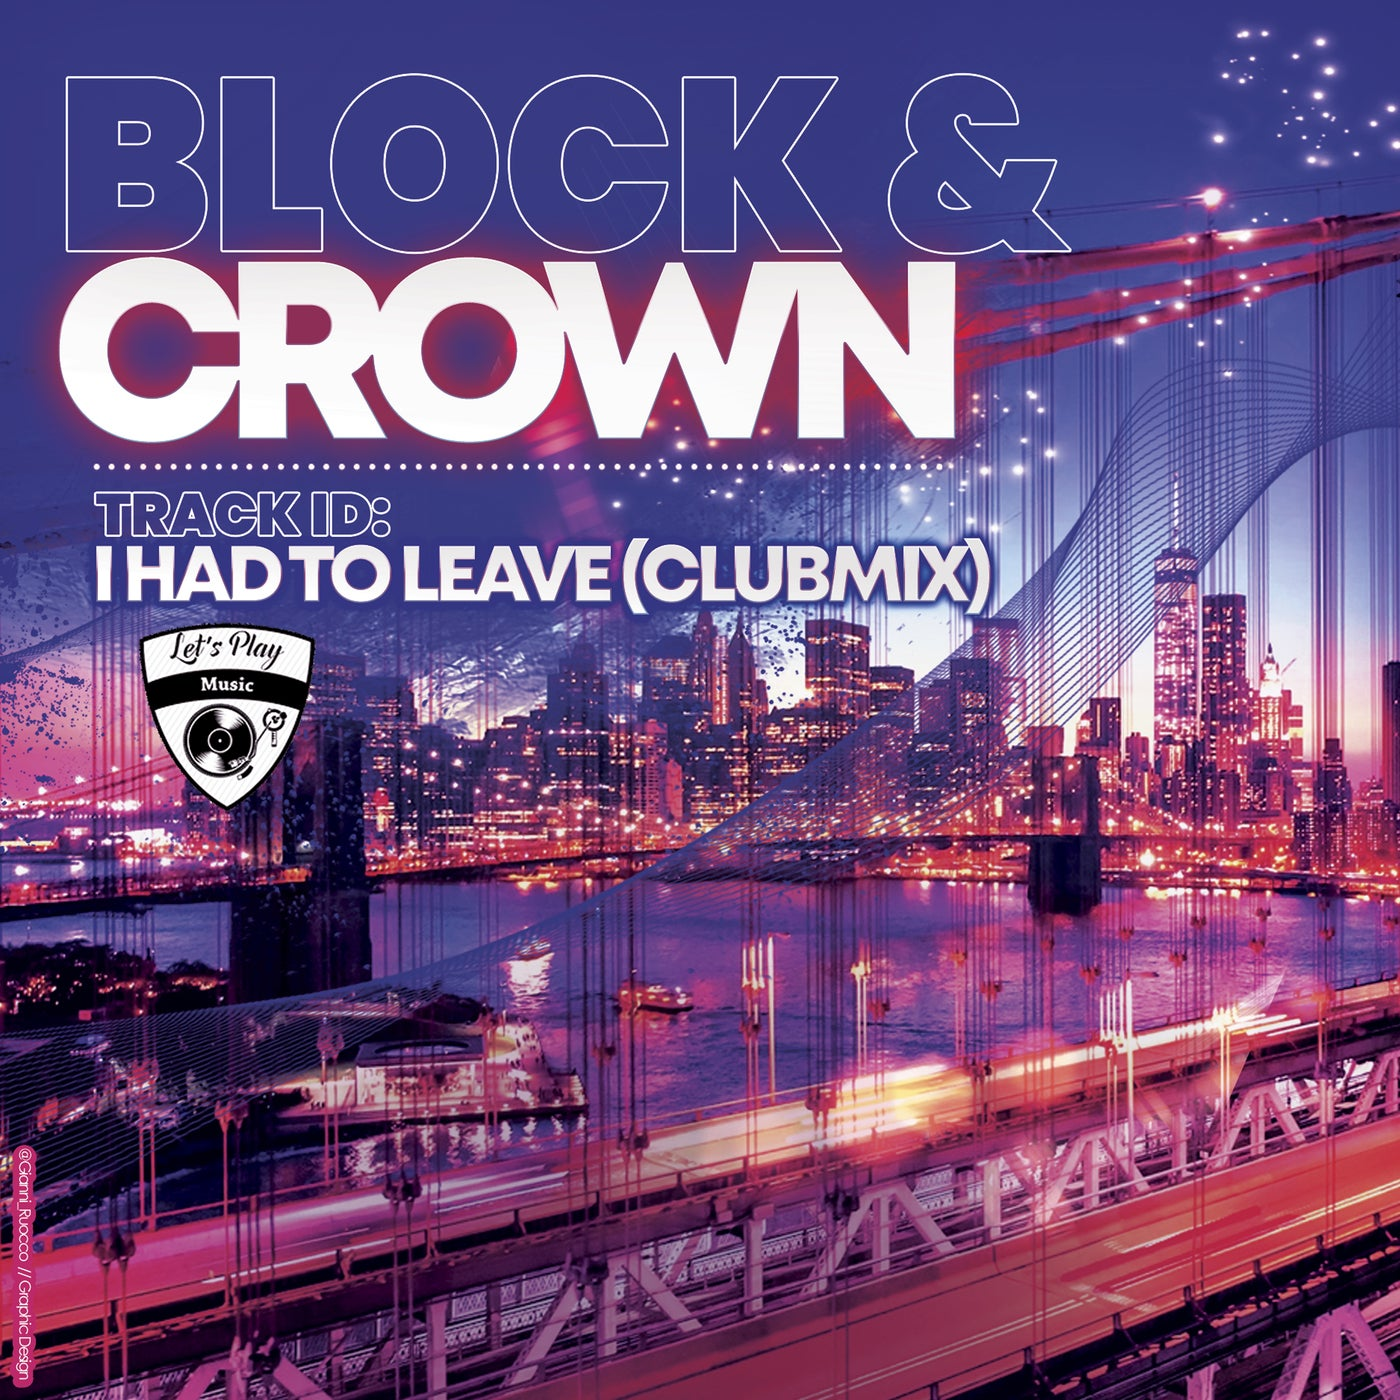 I Had to Leave (Club Mix)